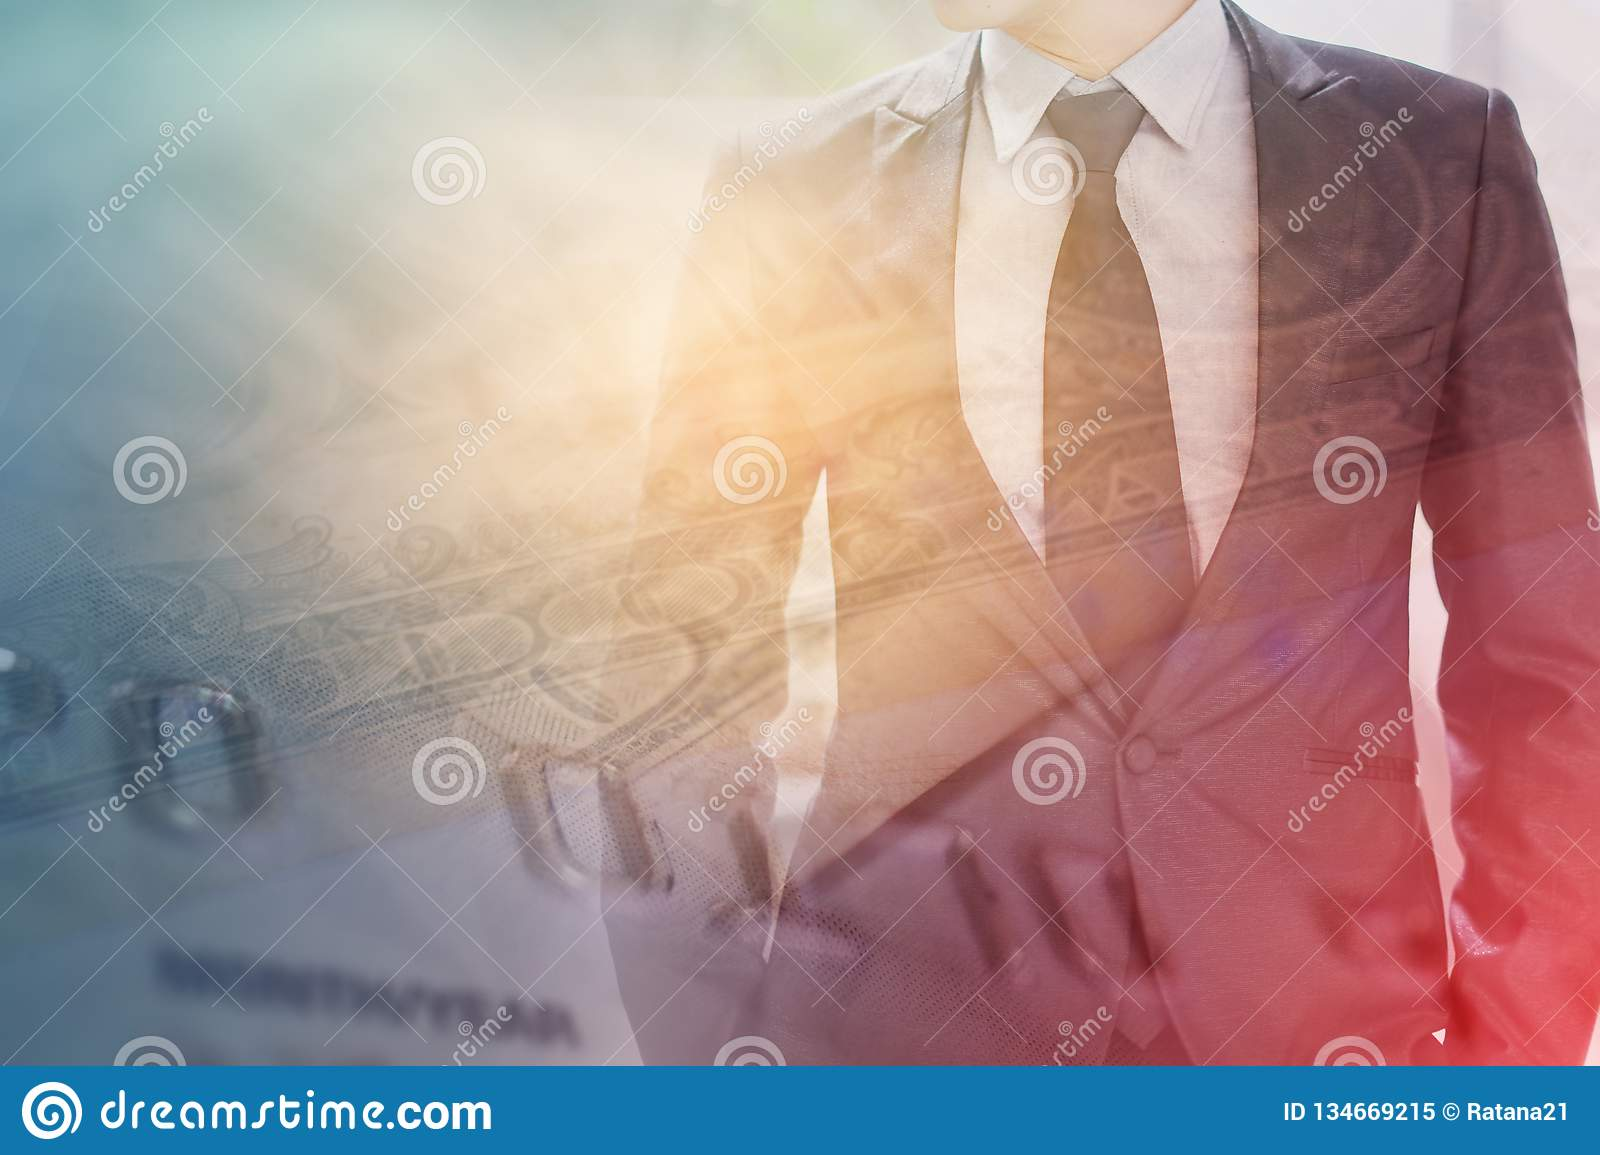 90d750fc61868 Double exposure of credit card and business man for business and finance  background